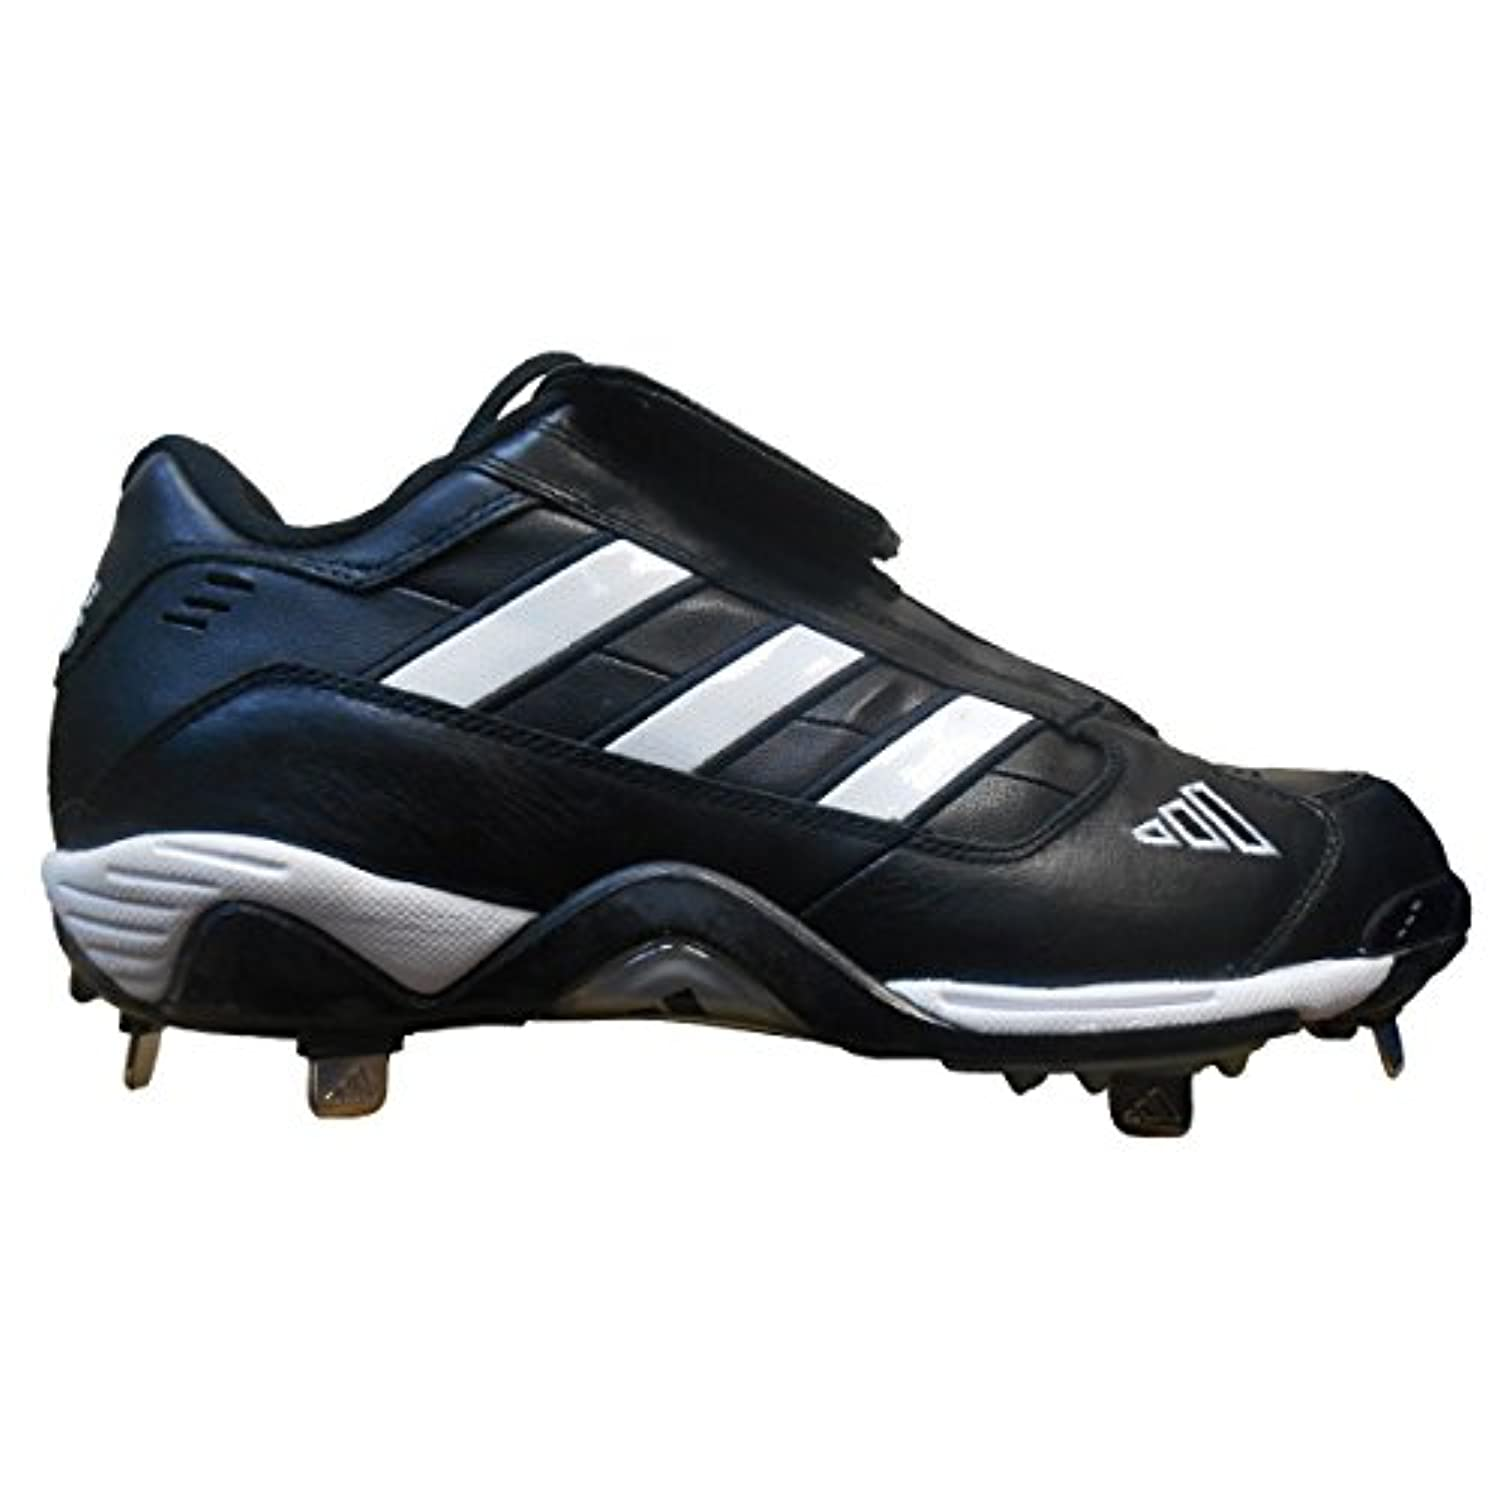 adidas Men's Excelsior Classic L Baseball Cleat (9.5, Black/Running White/Metallic Silver)